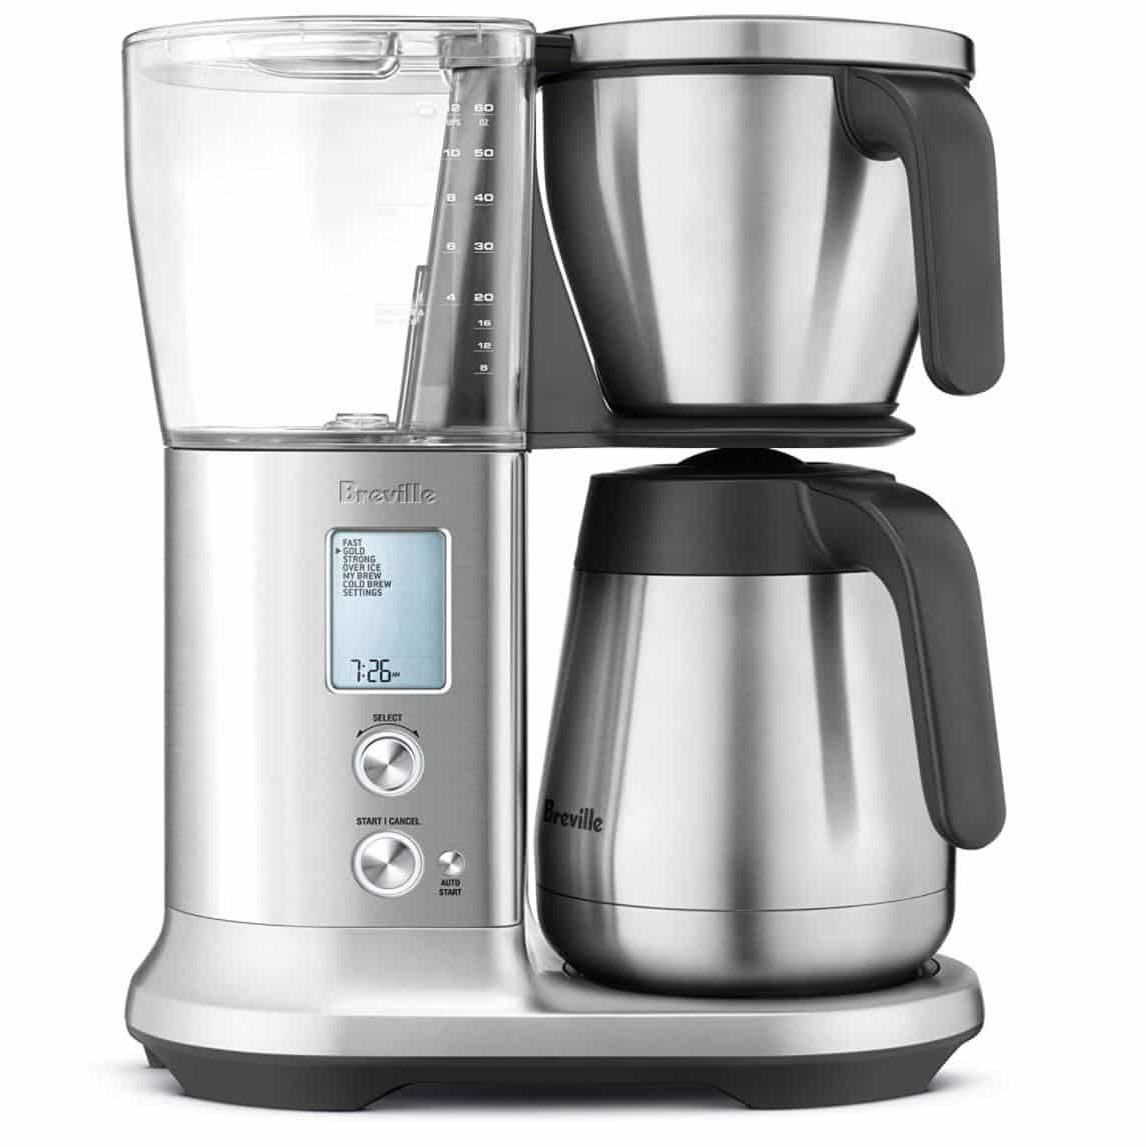 Breville Precision Brewer - Best Temperature for Brewing Coffee